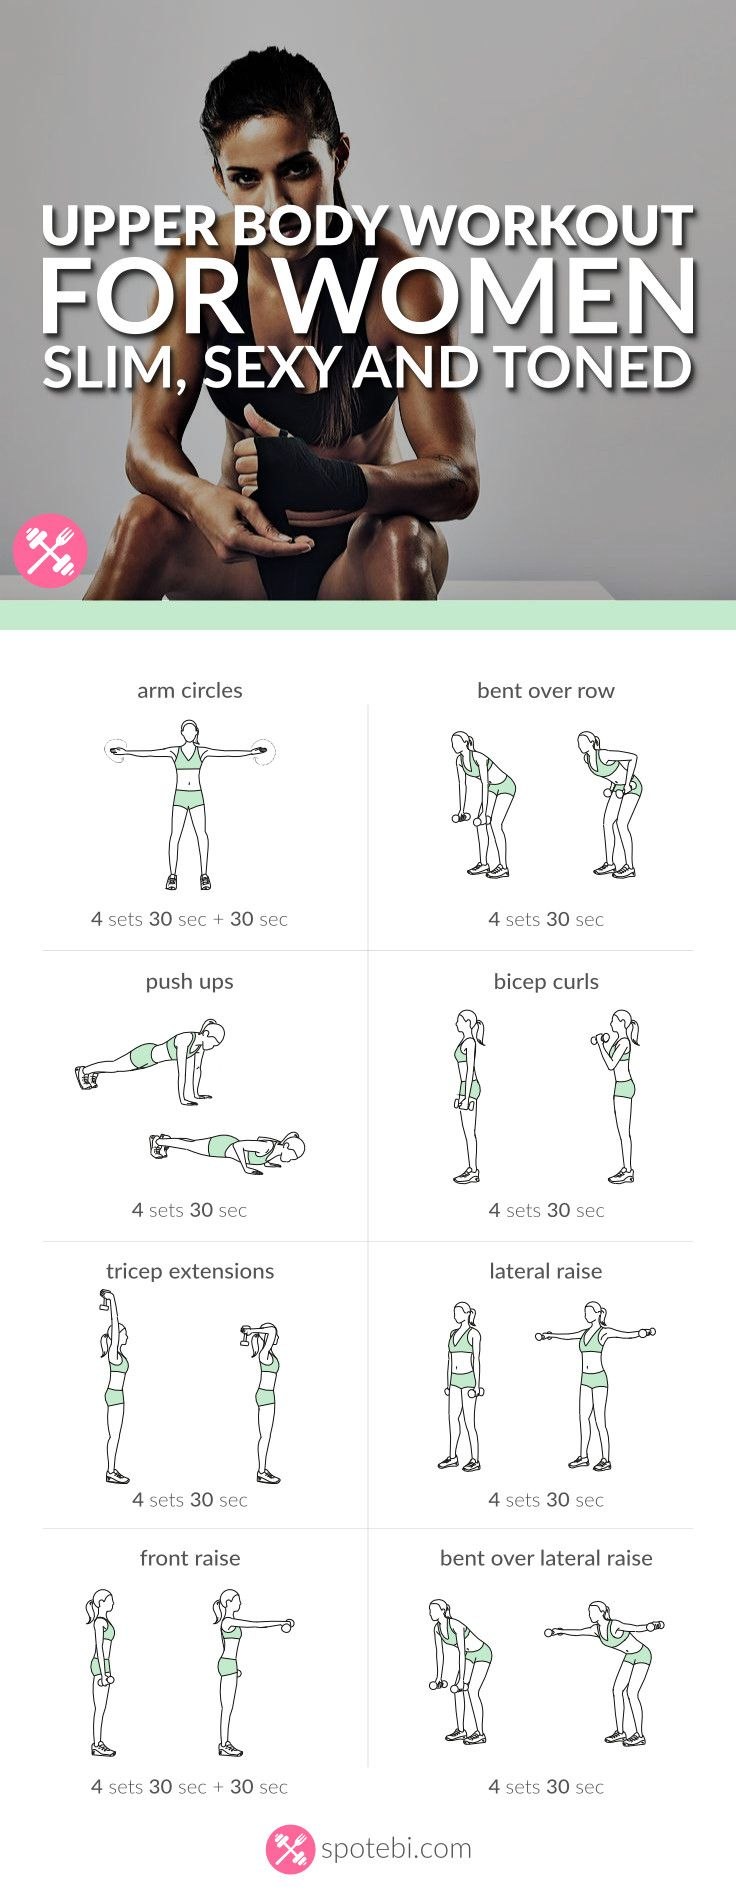 build sexier biceps upper body workouts upper body and body